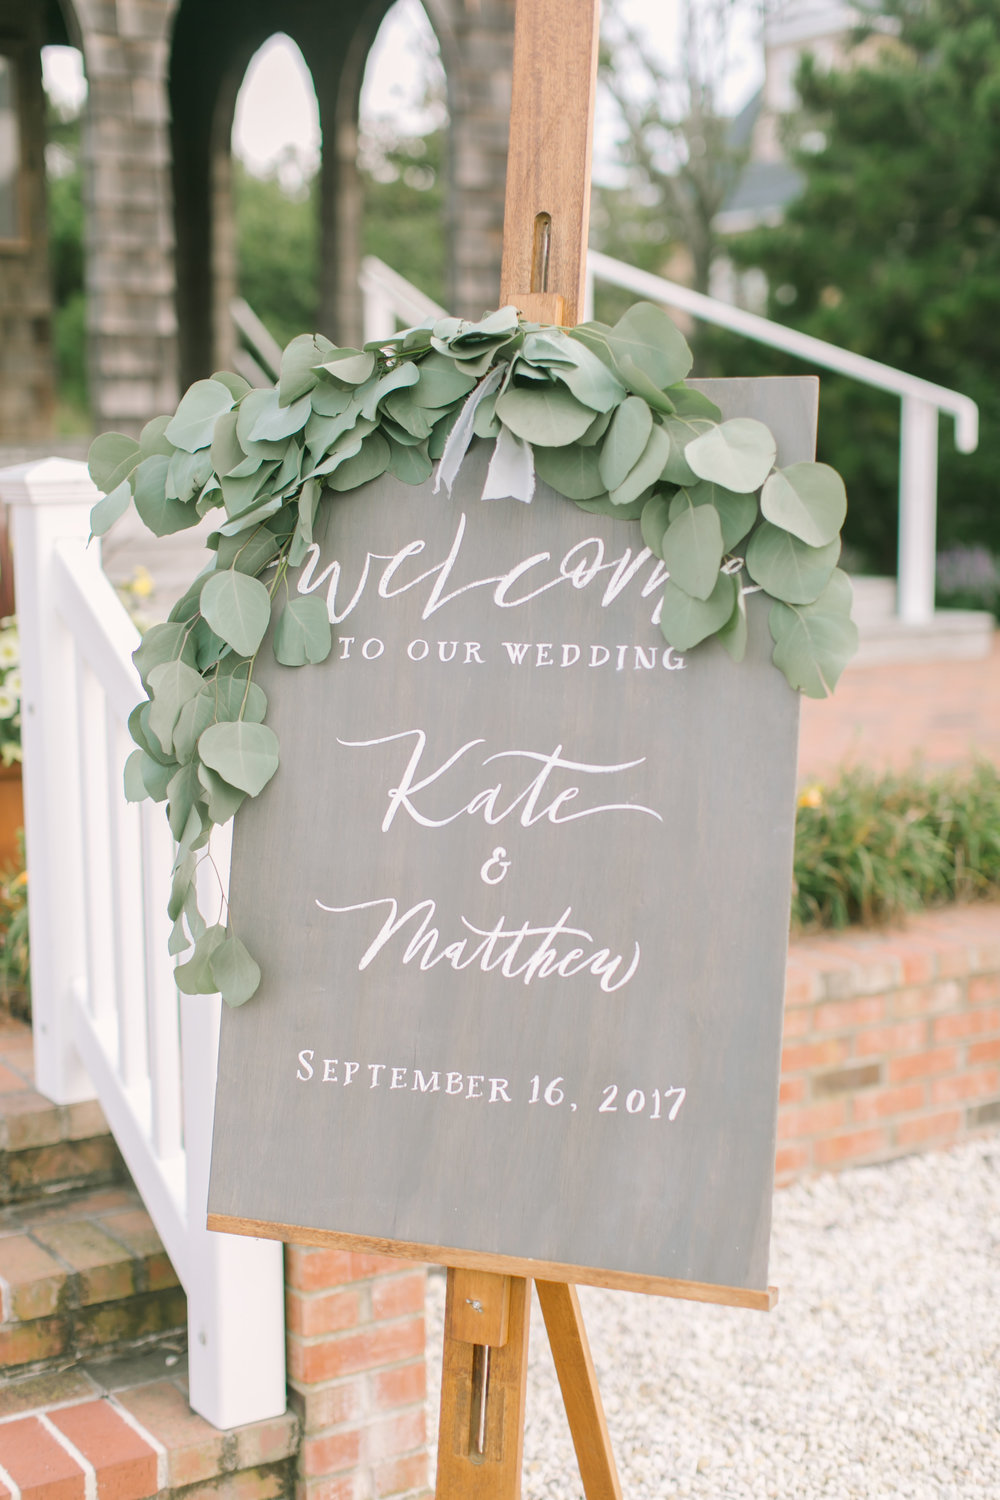 love&lightphotographs_kate&matthewl_9.16.17_wedding-359.jpg